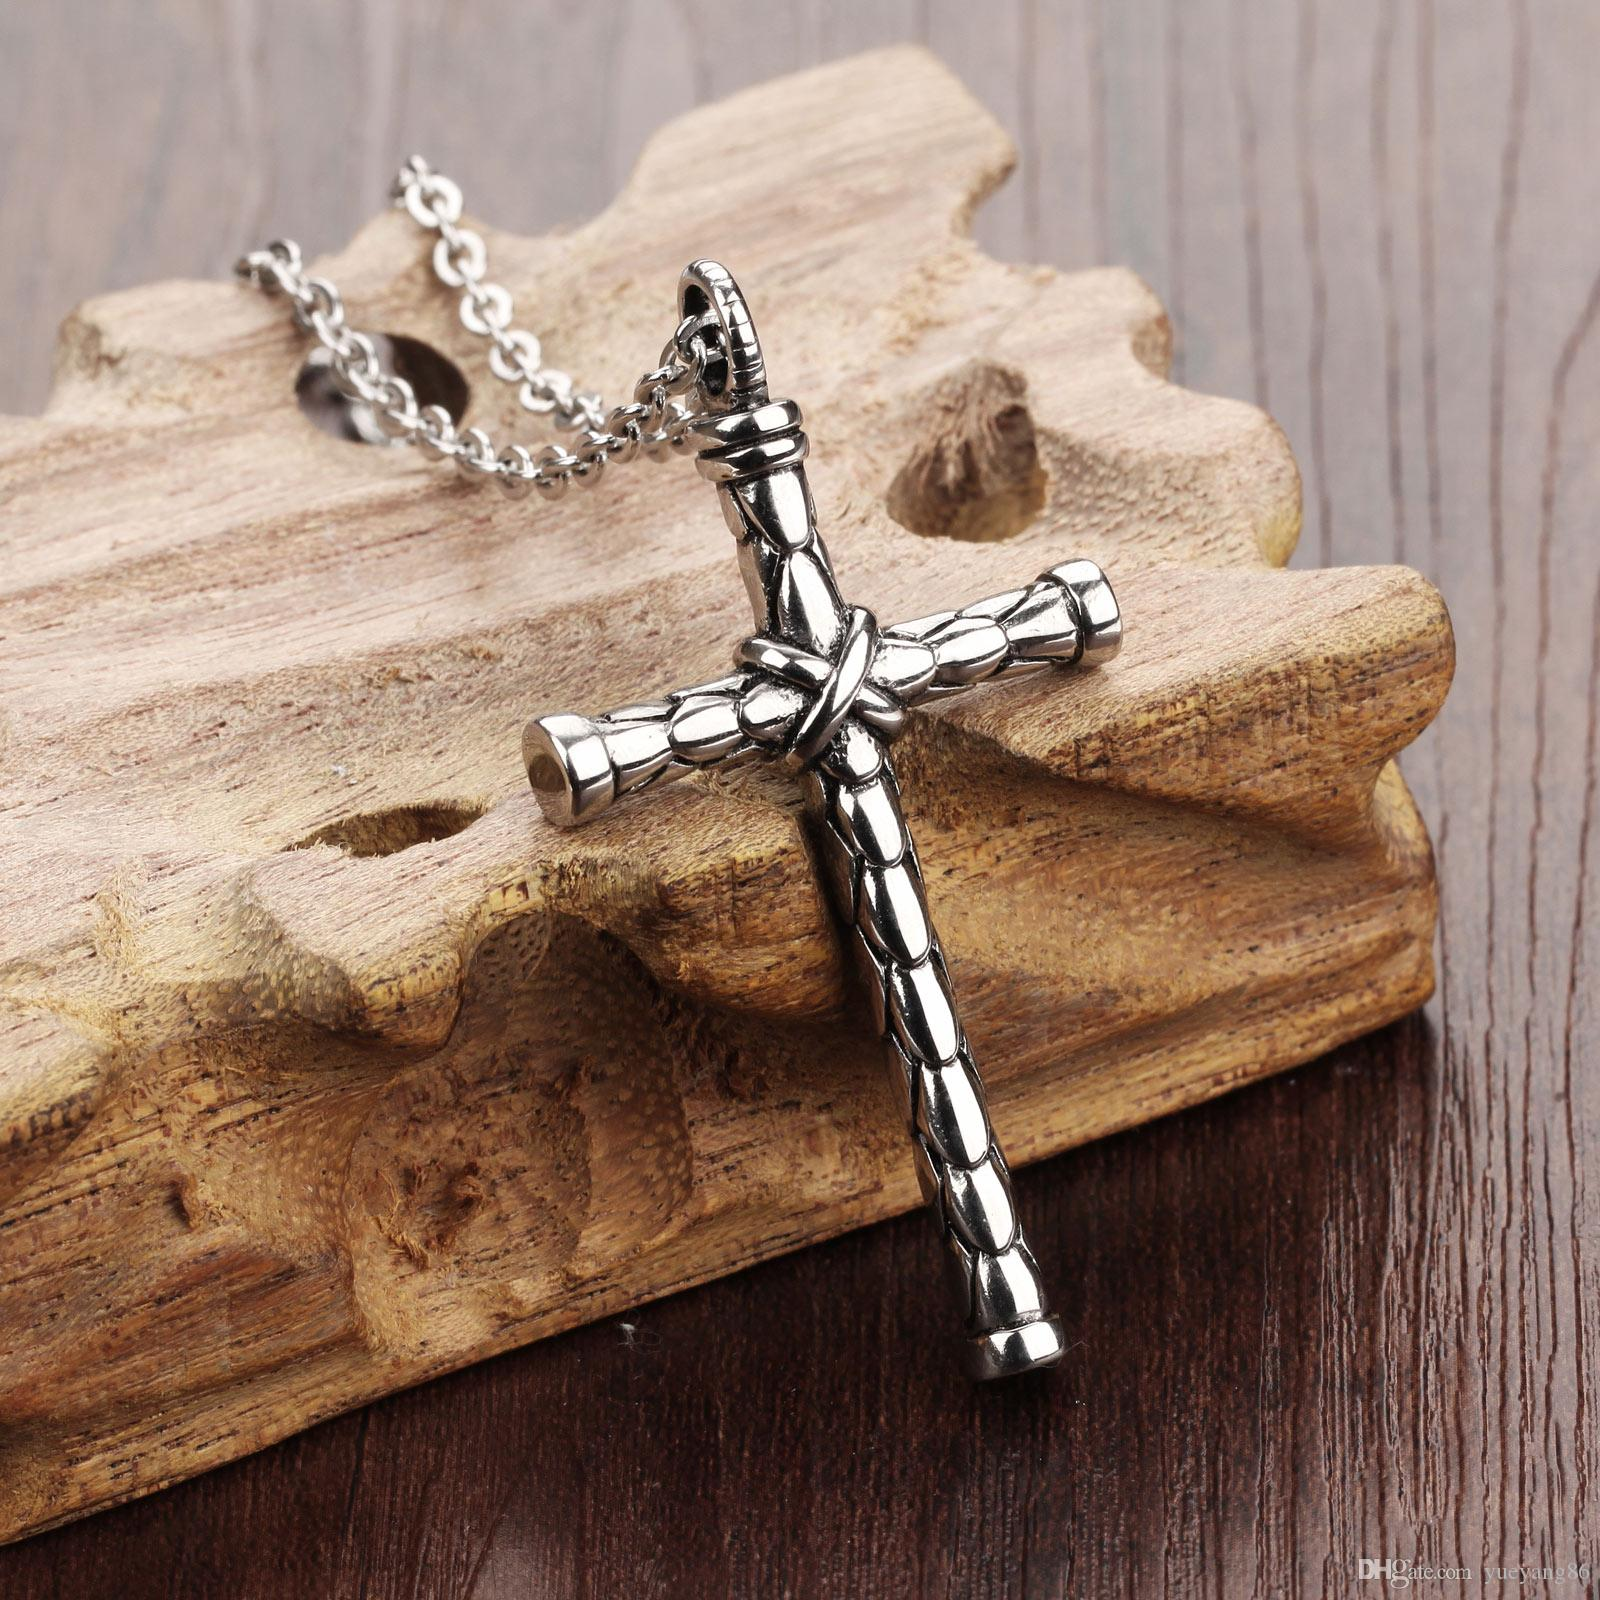 New Biker Stainless Steel Vintage Cross Necklace Pendant Free Chain Men's Fashion Jewelry High Quality